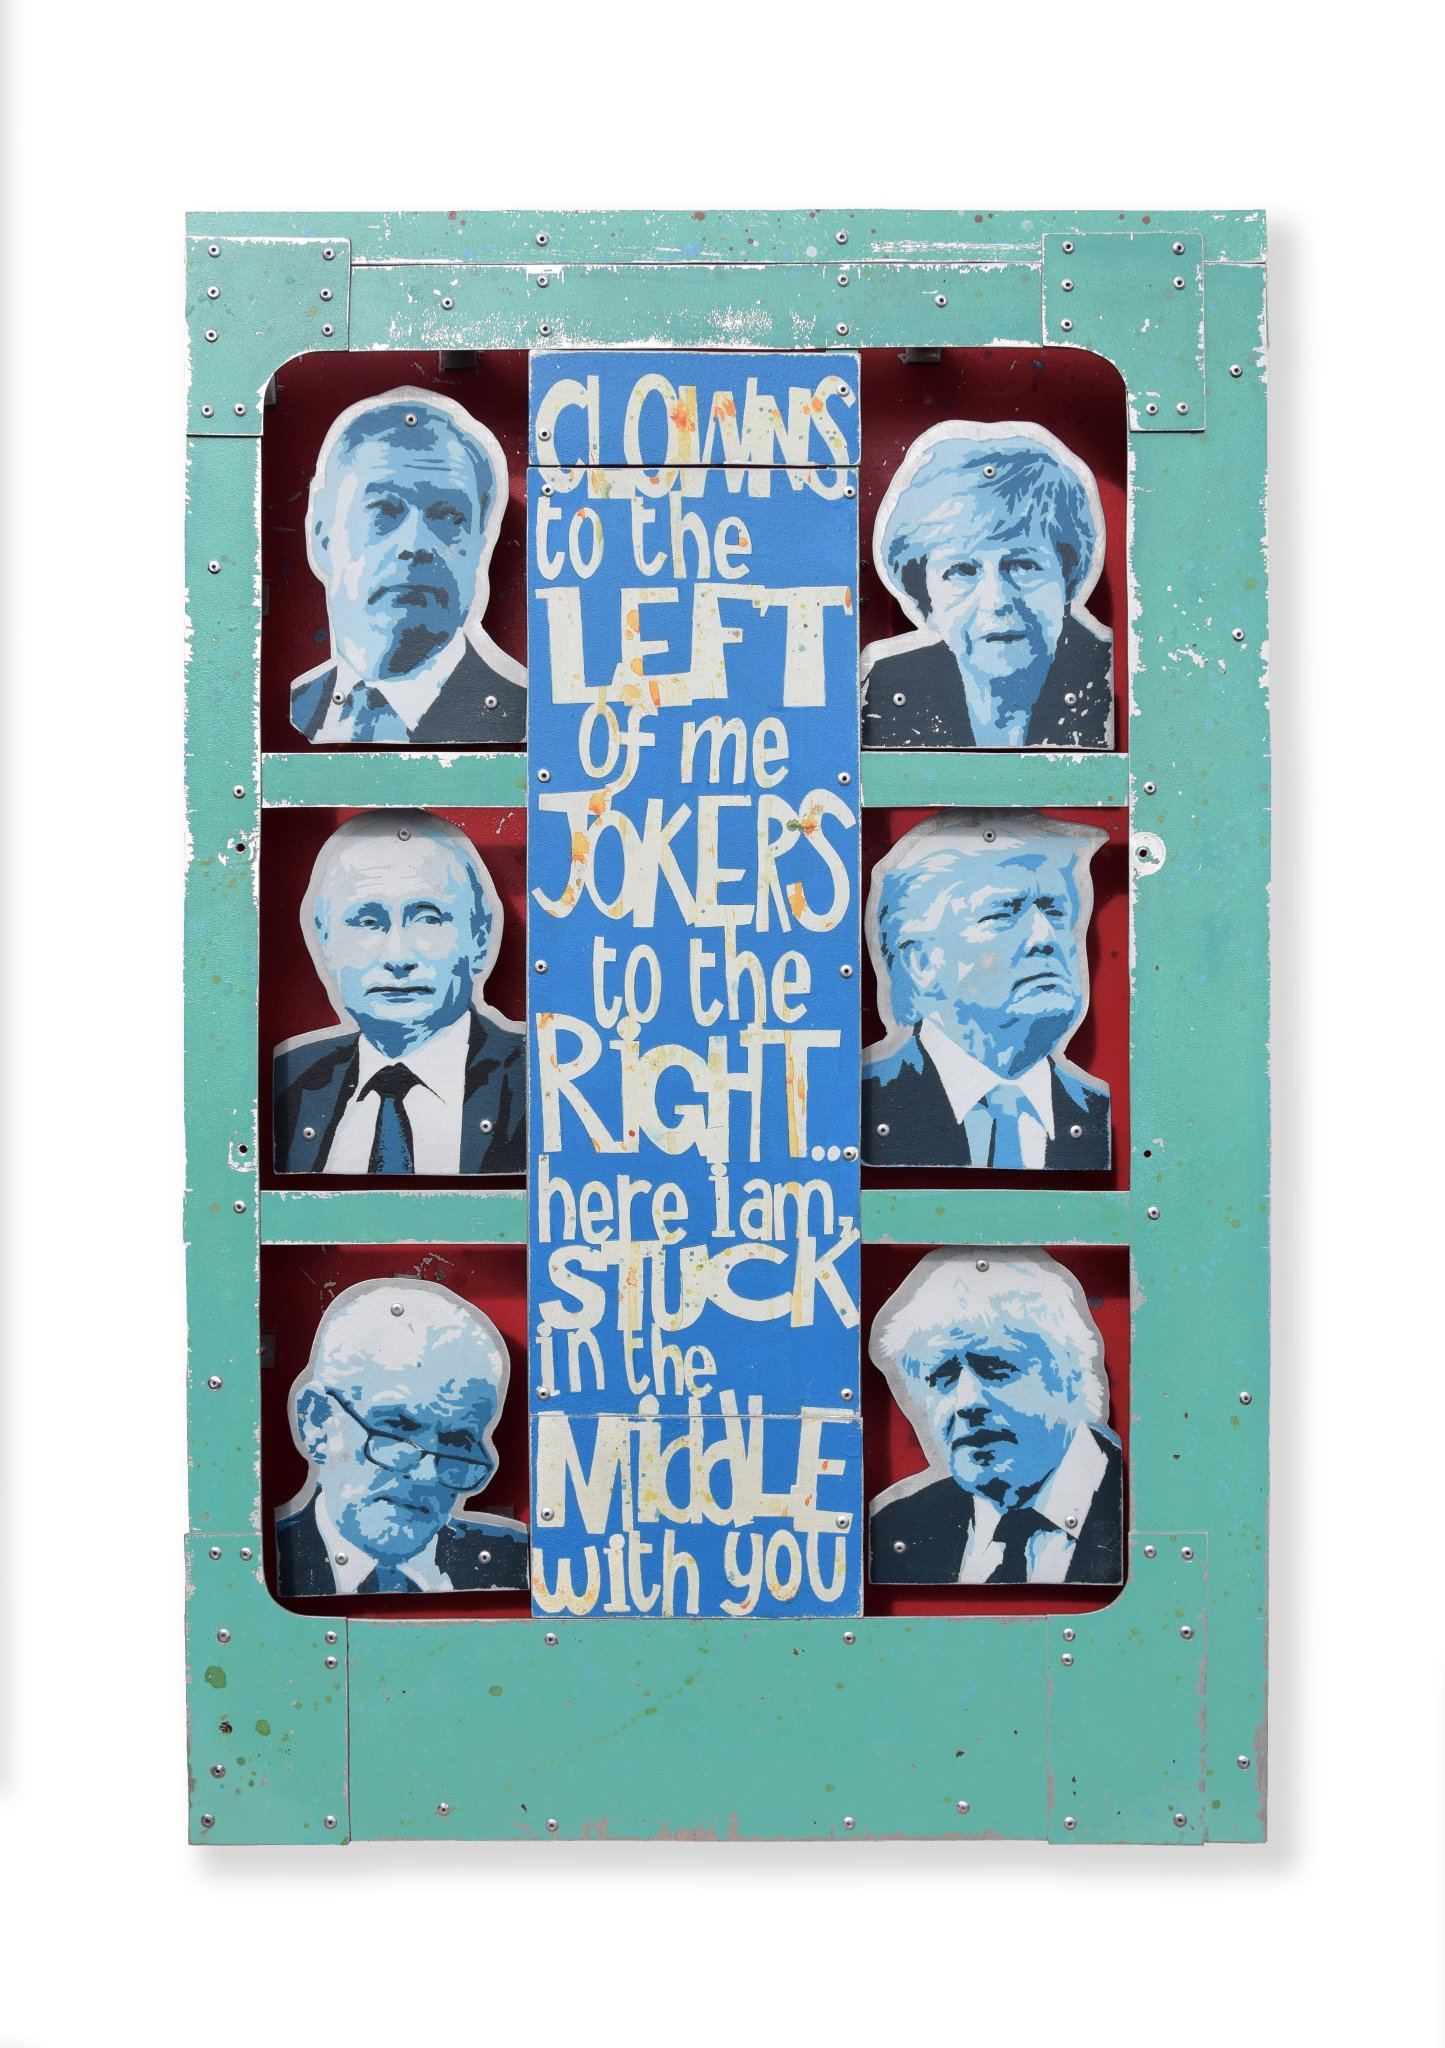 We just got an image for this piece by Andy Bridge, he told us he just couldn't resist... come and ask to see it at stand C8 @AAFLondon tonight. #art #politicalart, #aaf #artonmetal, #affordableartfair, #brexit https://t.co/fV5F2ylUBp